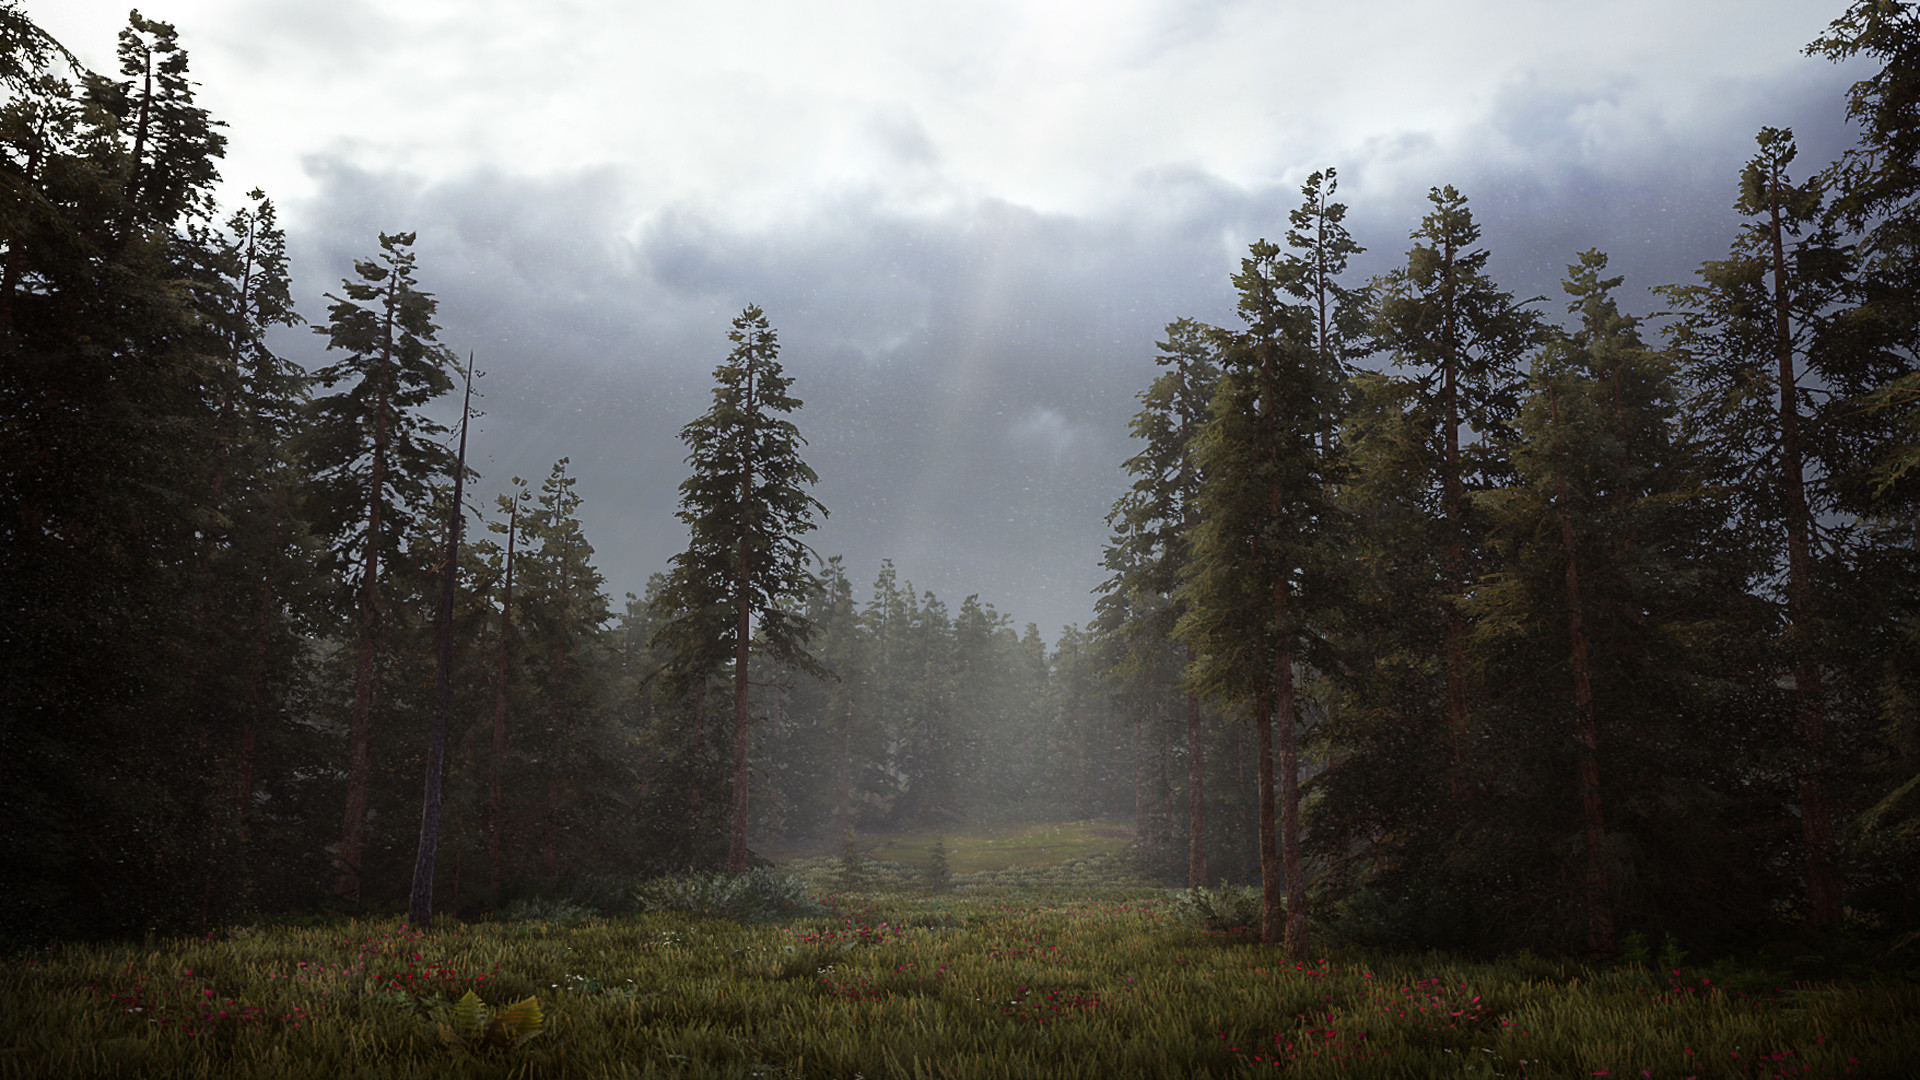 Hunting Simulator 2 uses Unreal Engine 4 to power its outdoor environments.